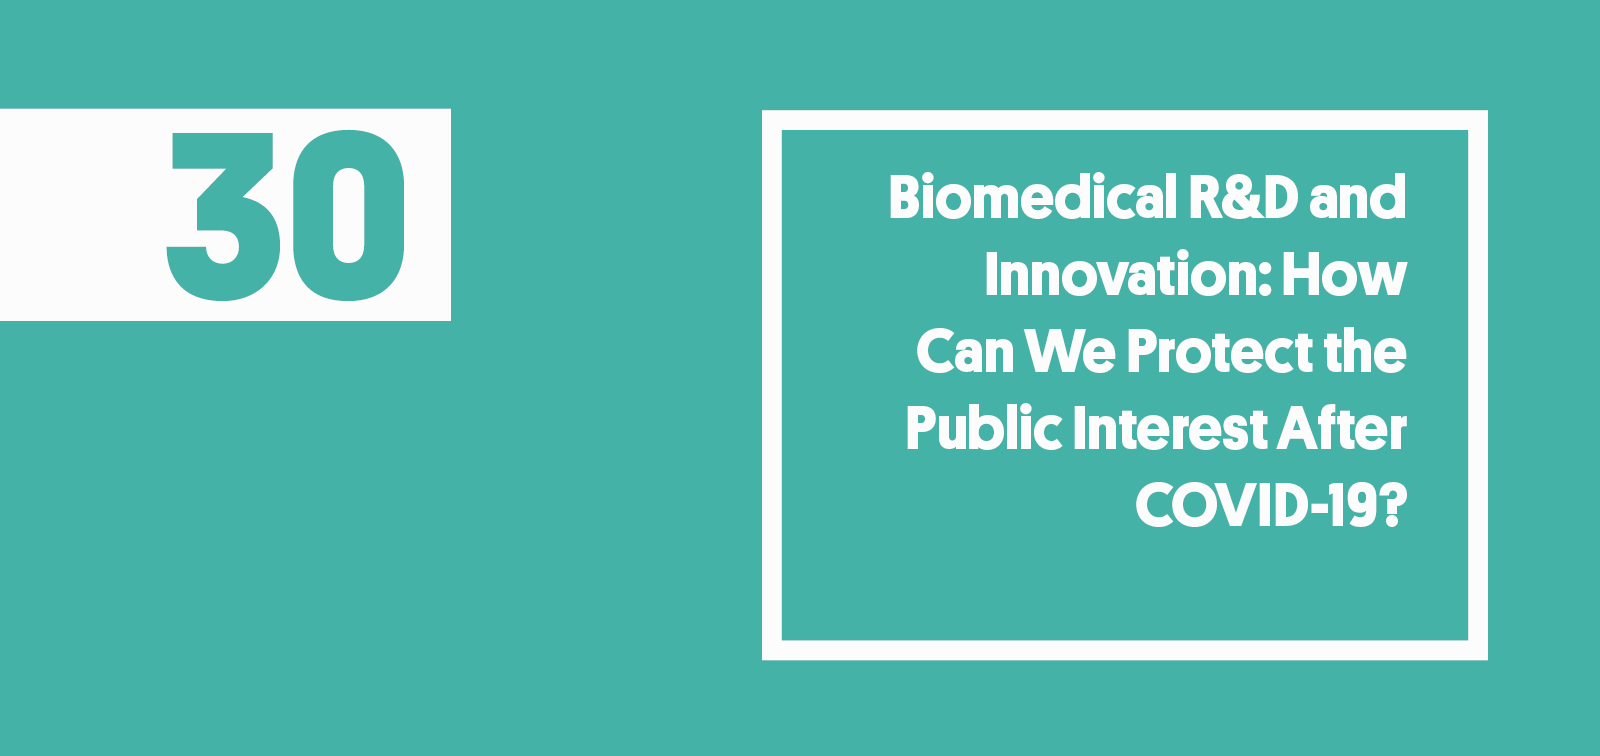 ISGlobal Biomedical R&D Innovation COVID